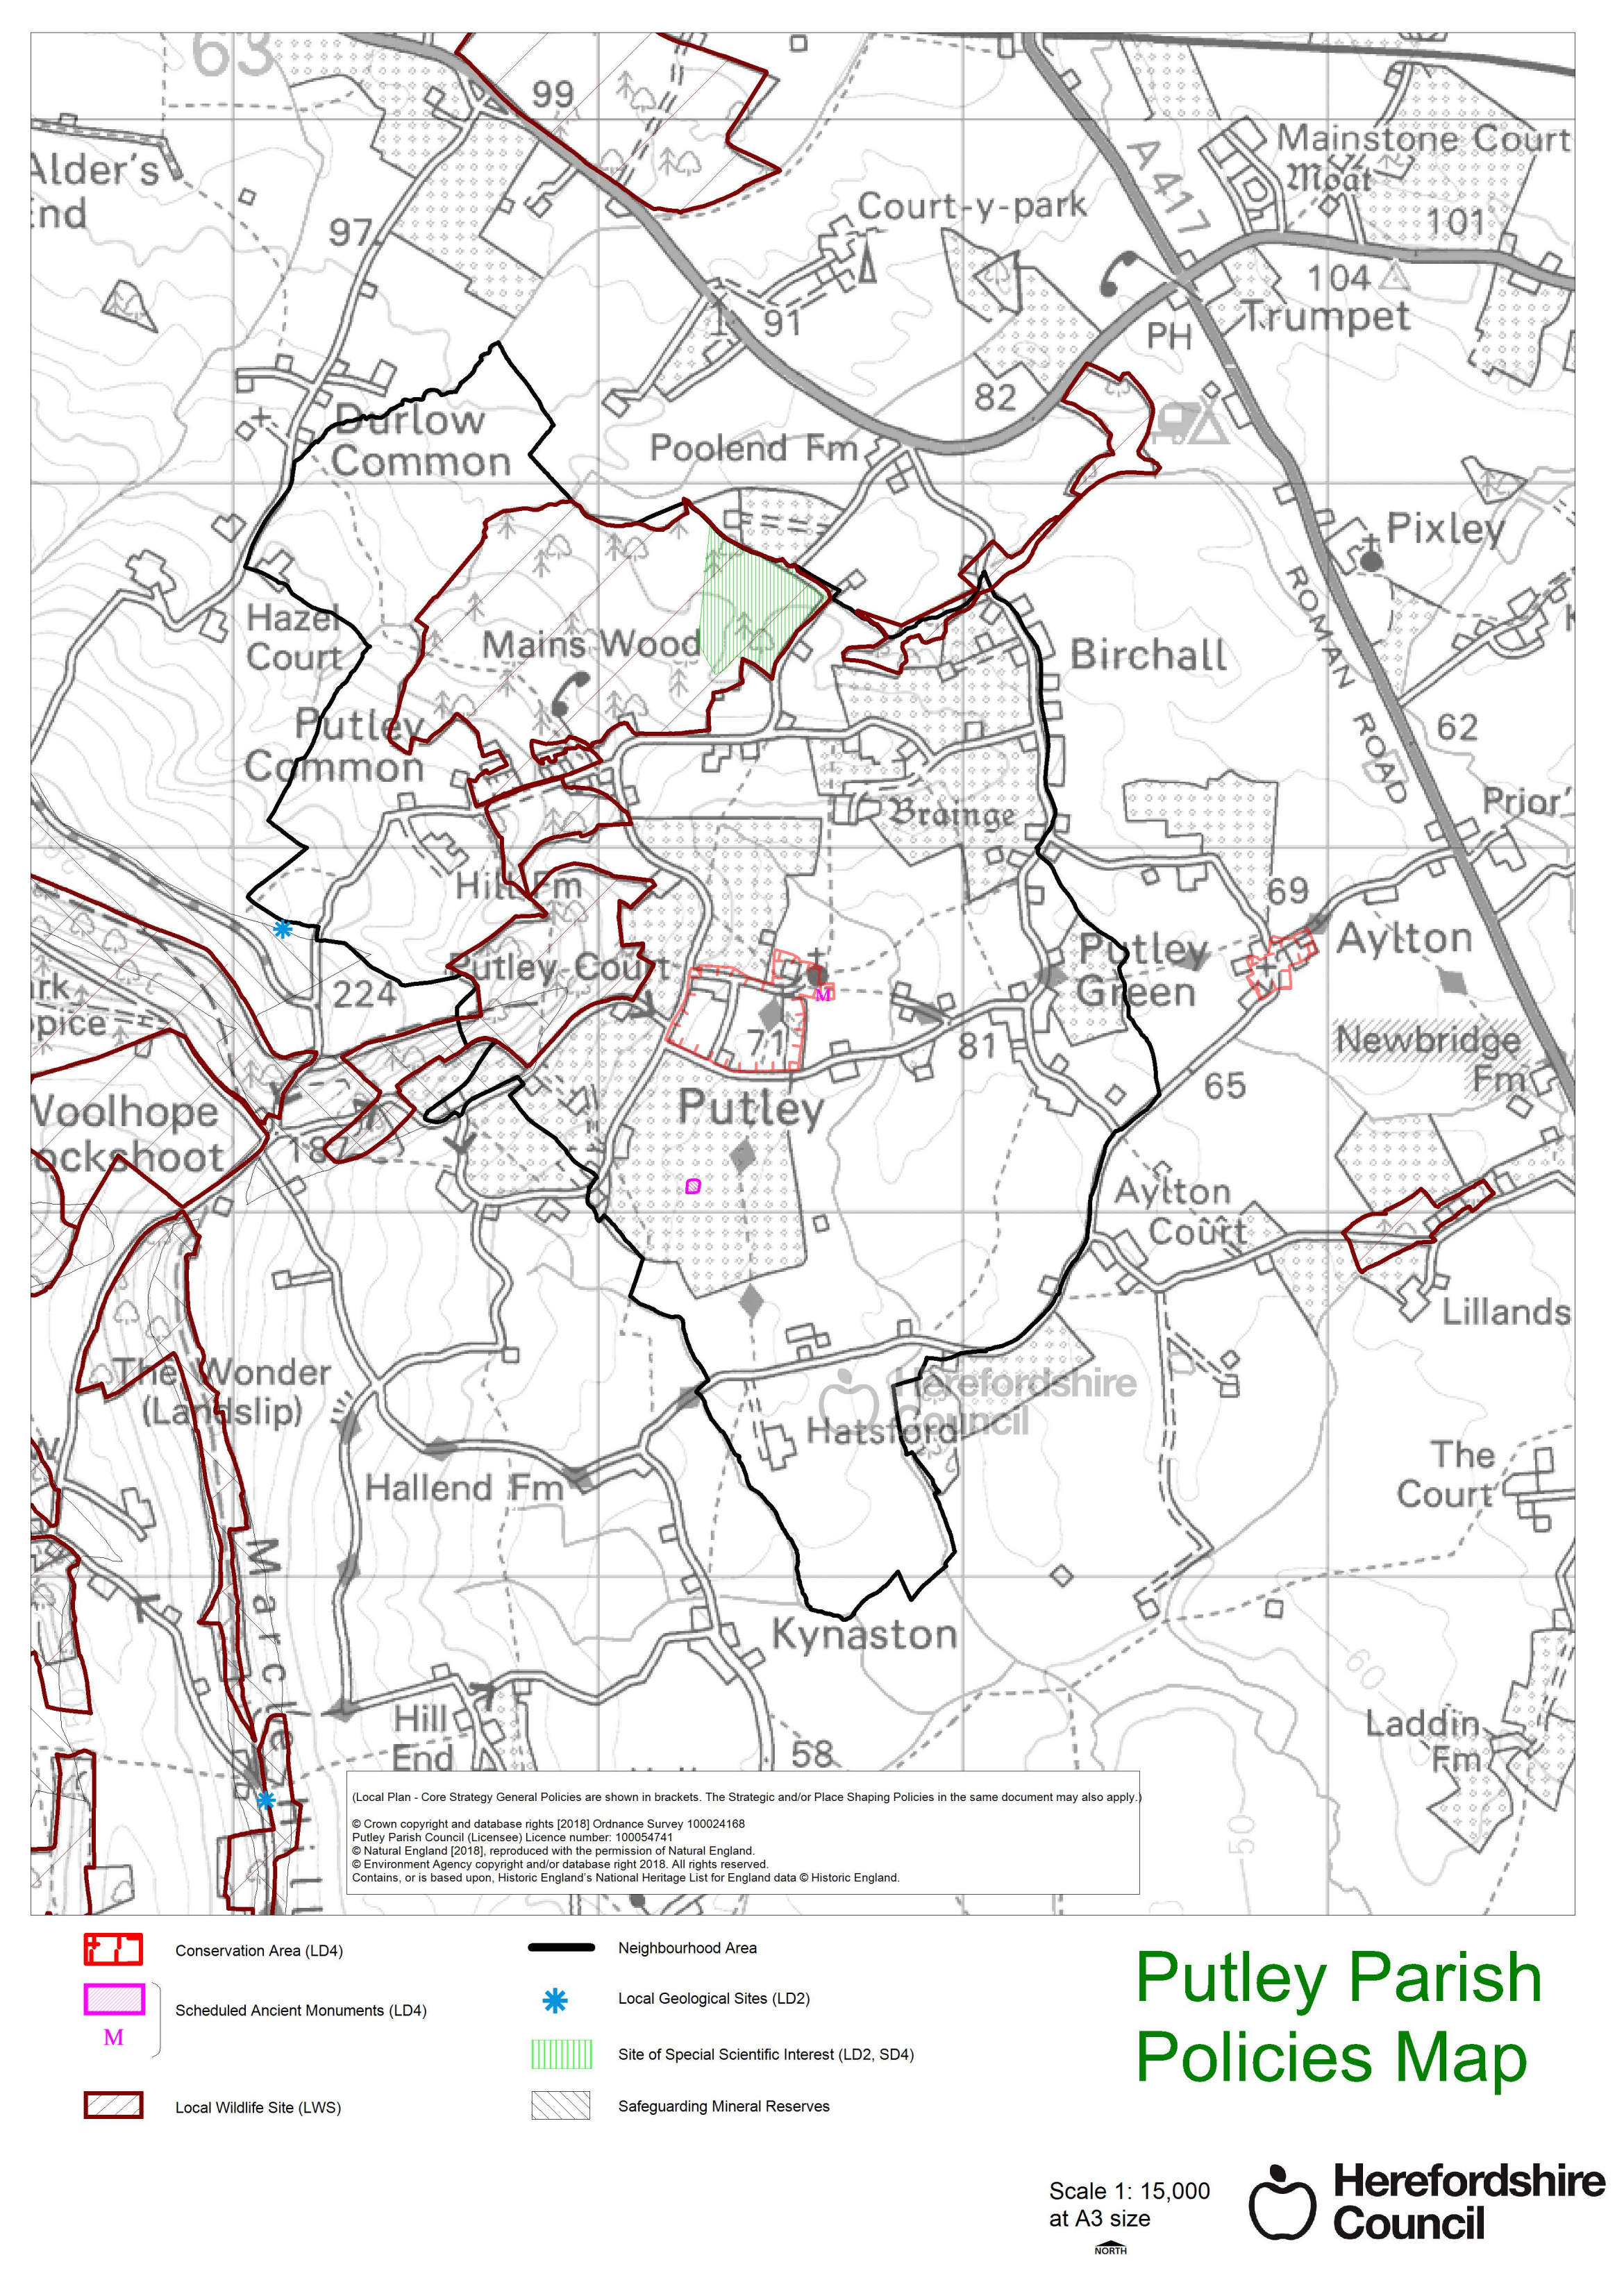 Putley Parish Policies Map